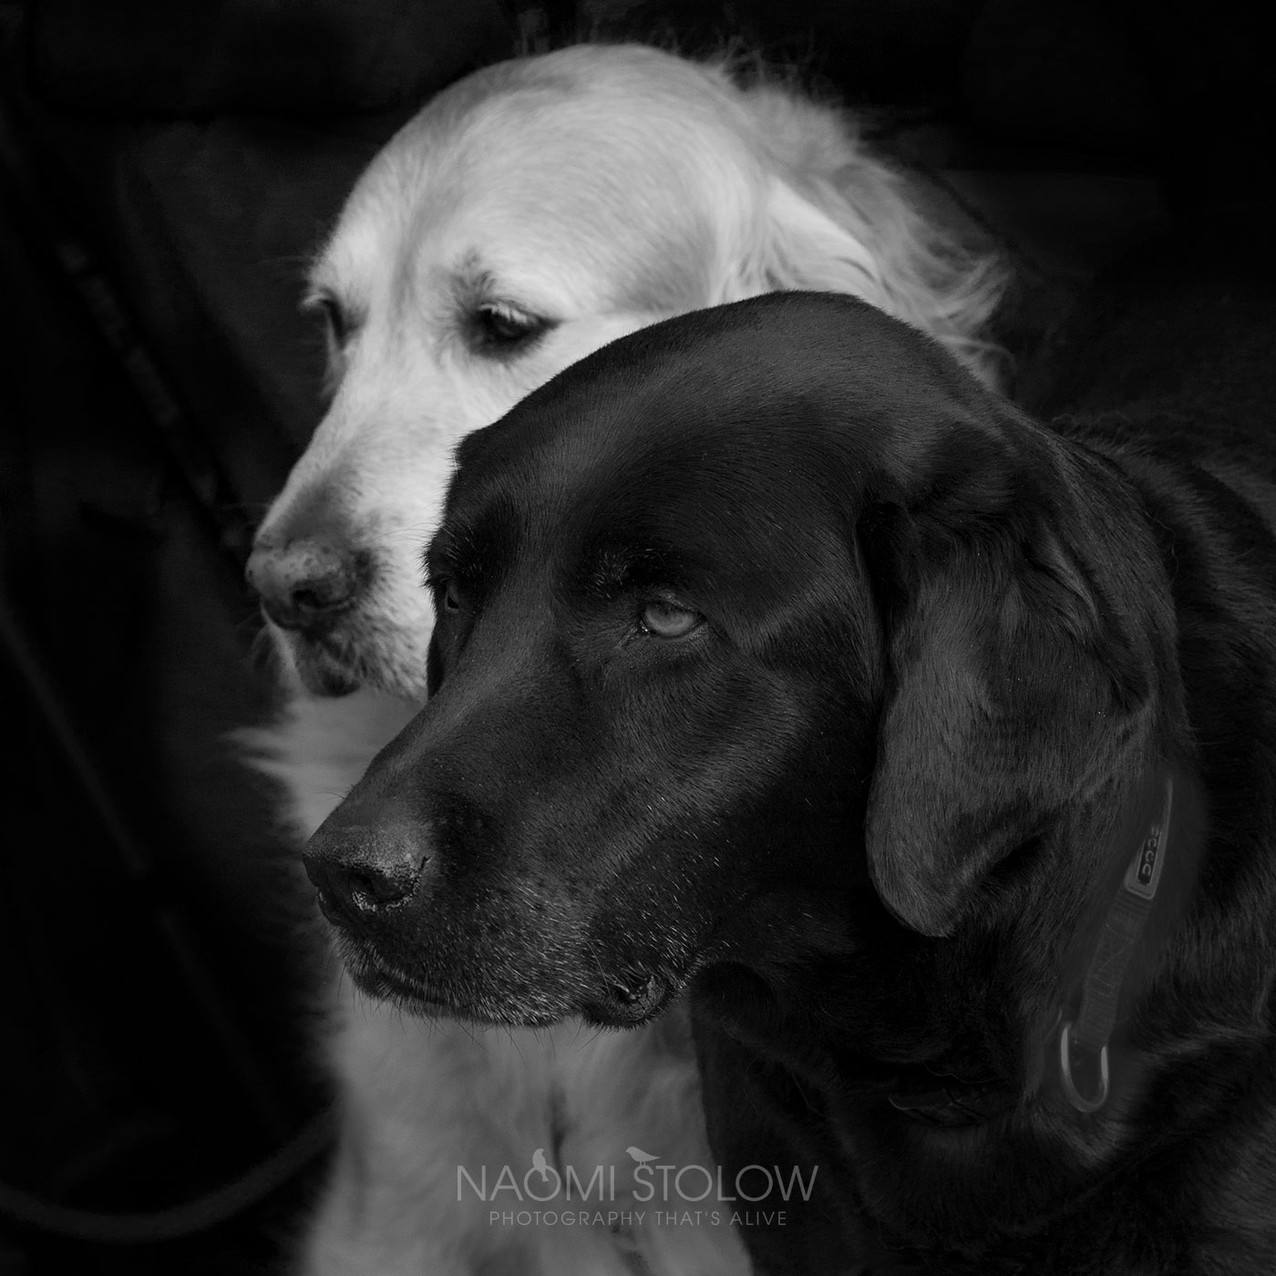 Photograph of guide dogs